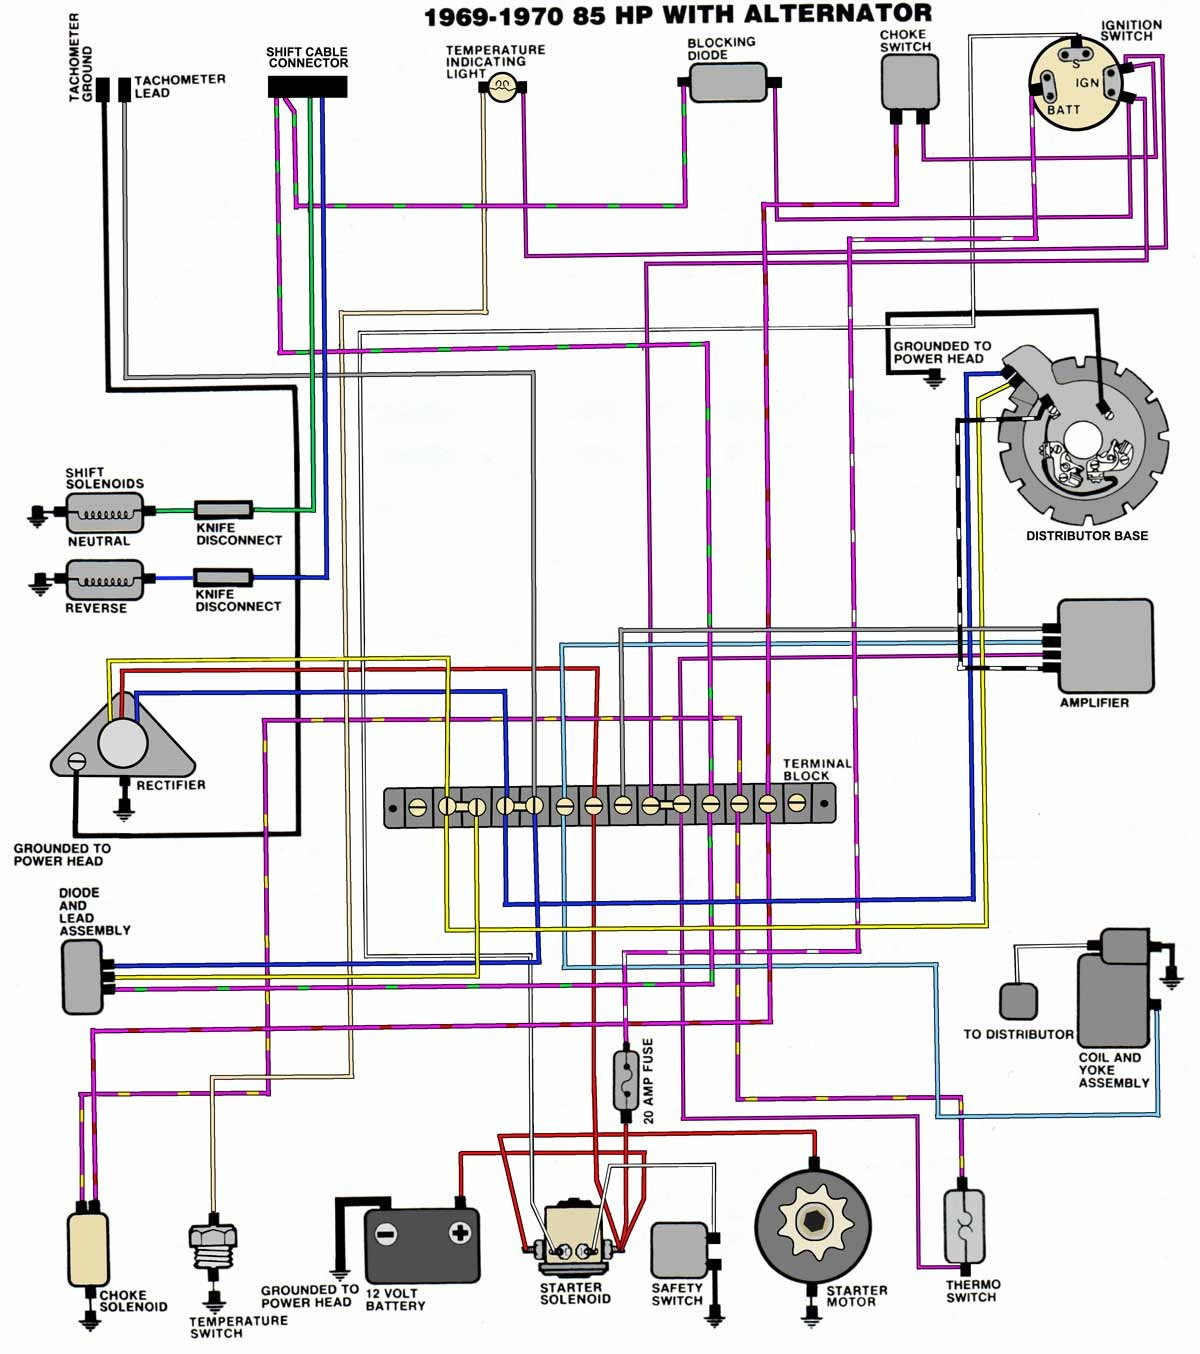 hight resolution of 85 hp mercury outboard wiring diagram best site wiring 50 hp mercury outboard wiring diagram 60